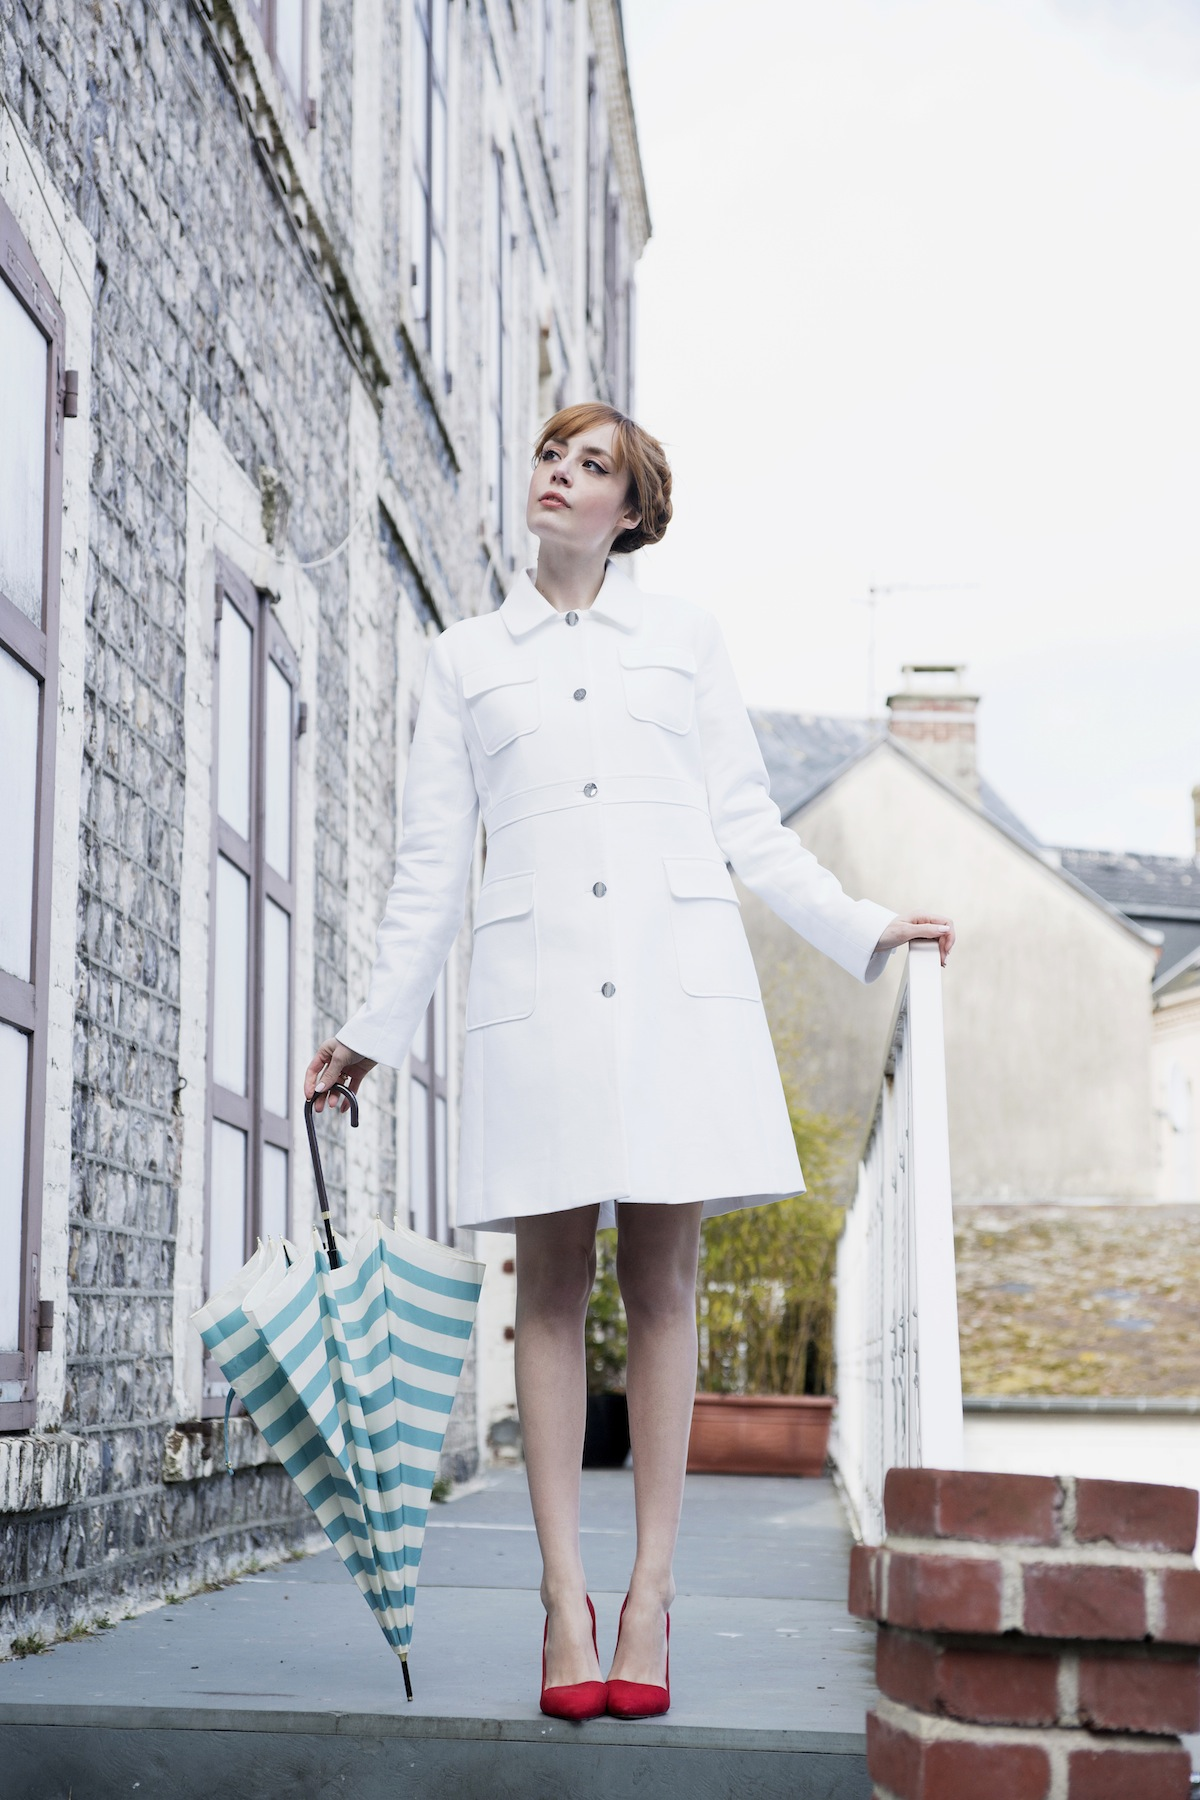 Louise Ebel is wearing a white coat from Paul & Joe and the red shoes are from Alice + Olivia